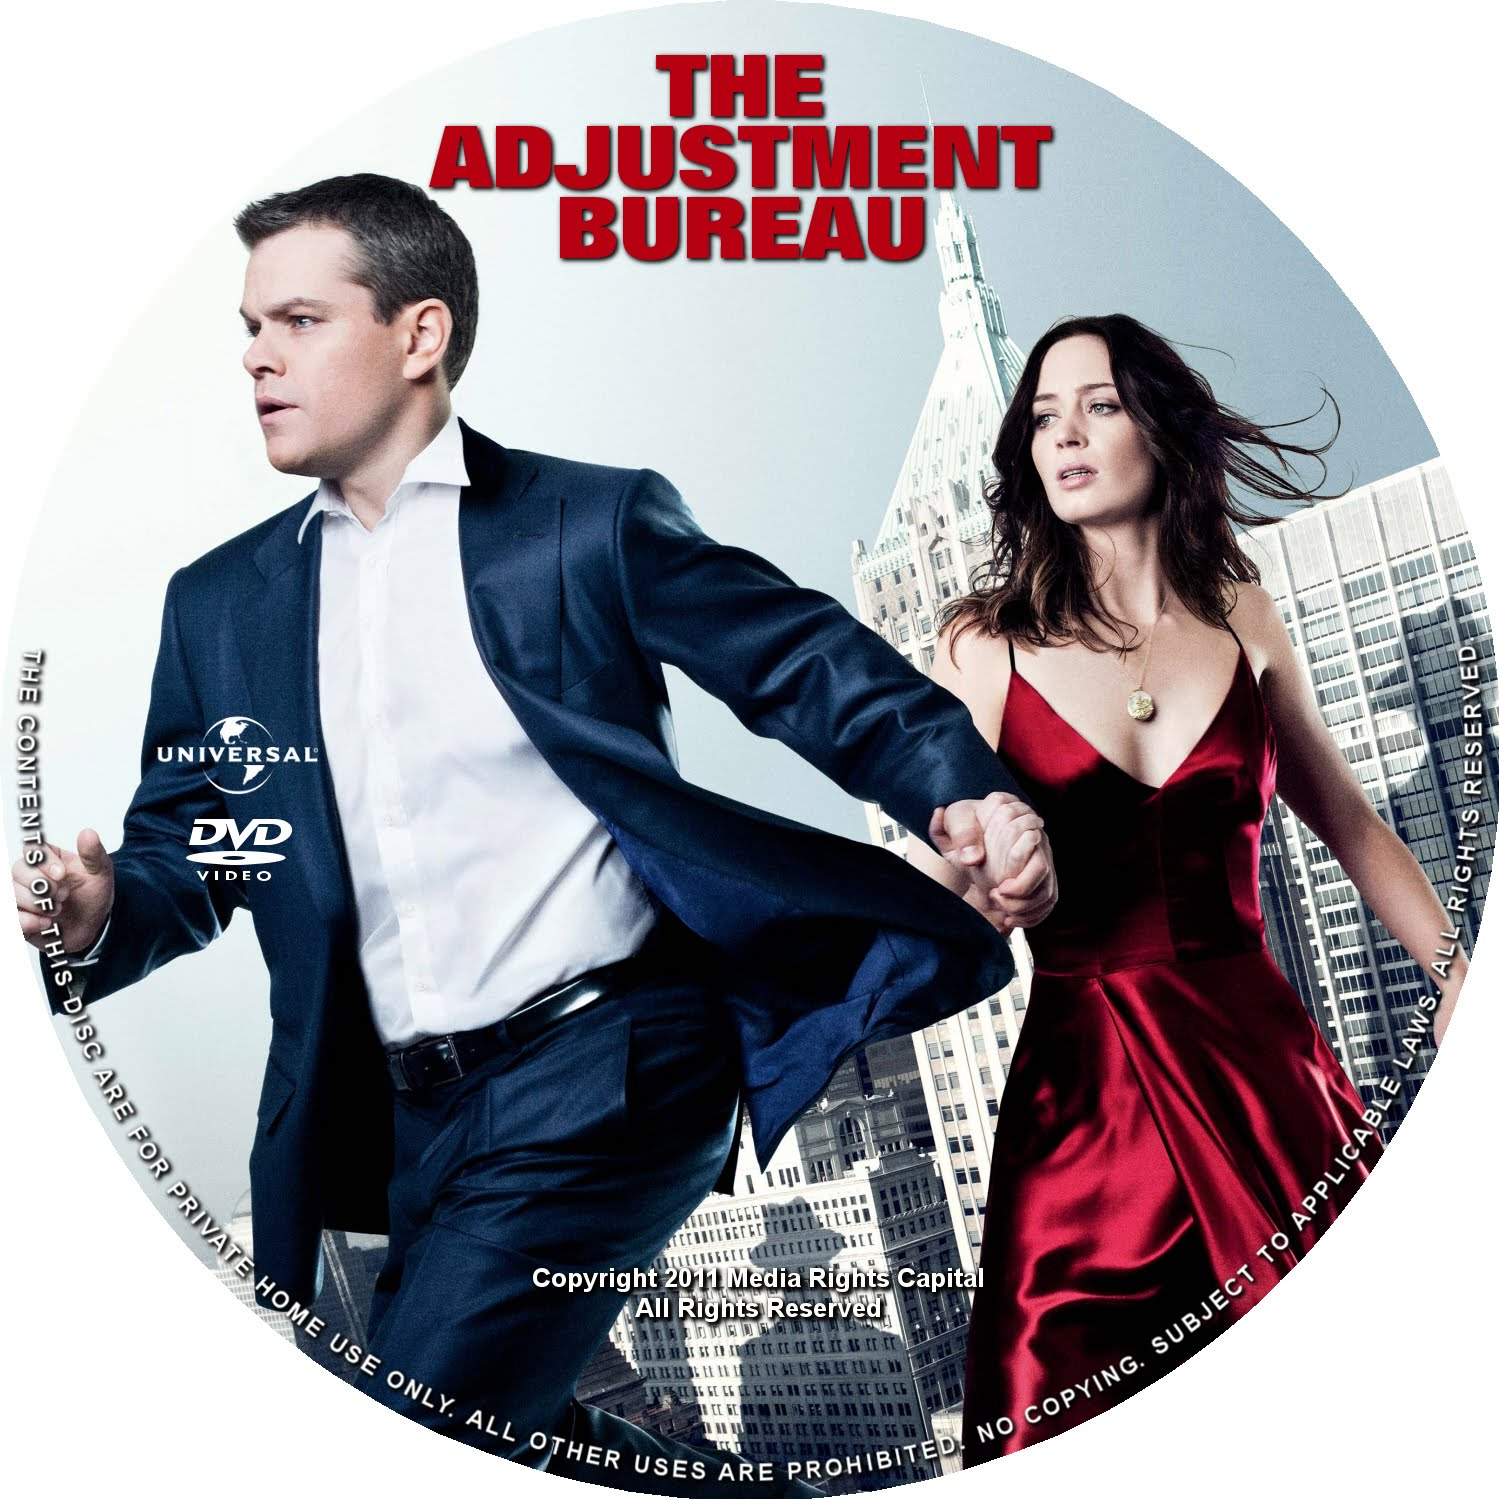 DVD COVERS AND LABELS: The Adjustment Bureau